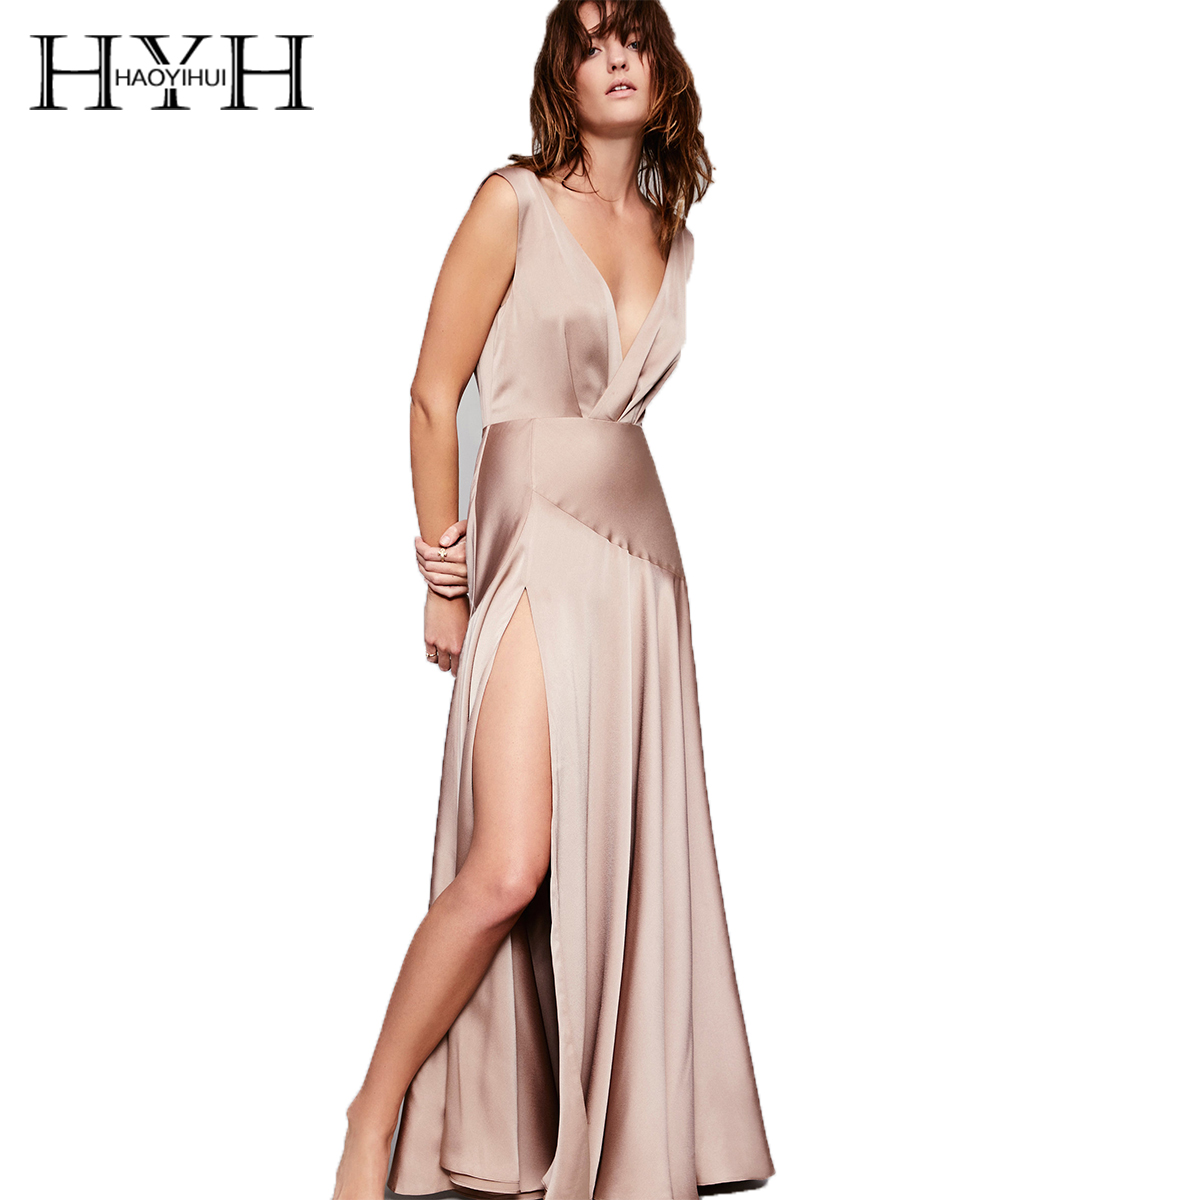 HYH HAOYIHUI 2017 Elegant Vetidos Two Colors Sleeveless V neck Backless Split Zipper Side Ruffles Vintage